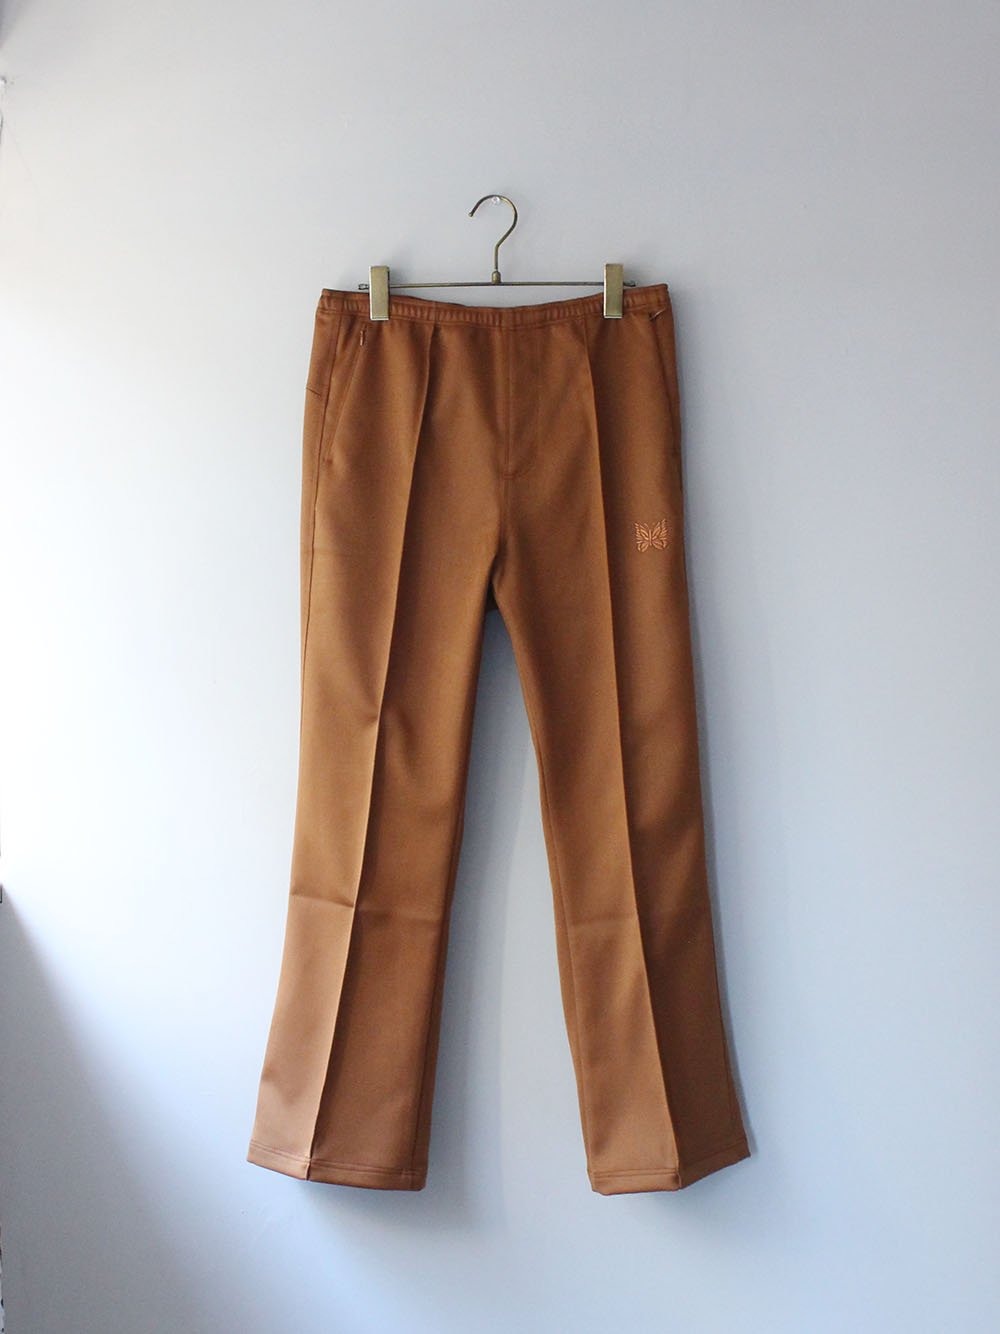 """<img class='new_mark_img1' src='https://img.shop-pro.jp/img/new/icons8.gif' style='border:none;display:inline;margin:0px;padding:0px;width:auto;' />Needles """" W.U. BOOT-CUT PANT - PE/R DOESKIN (BROWN)"""""""